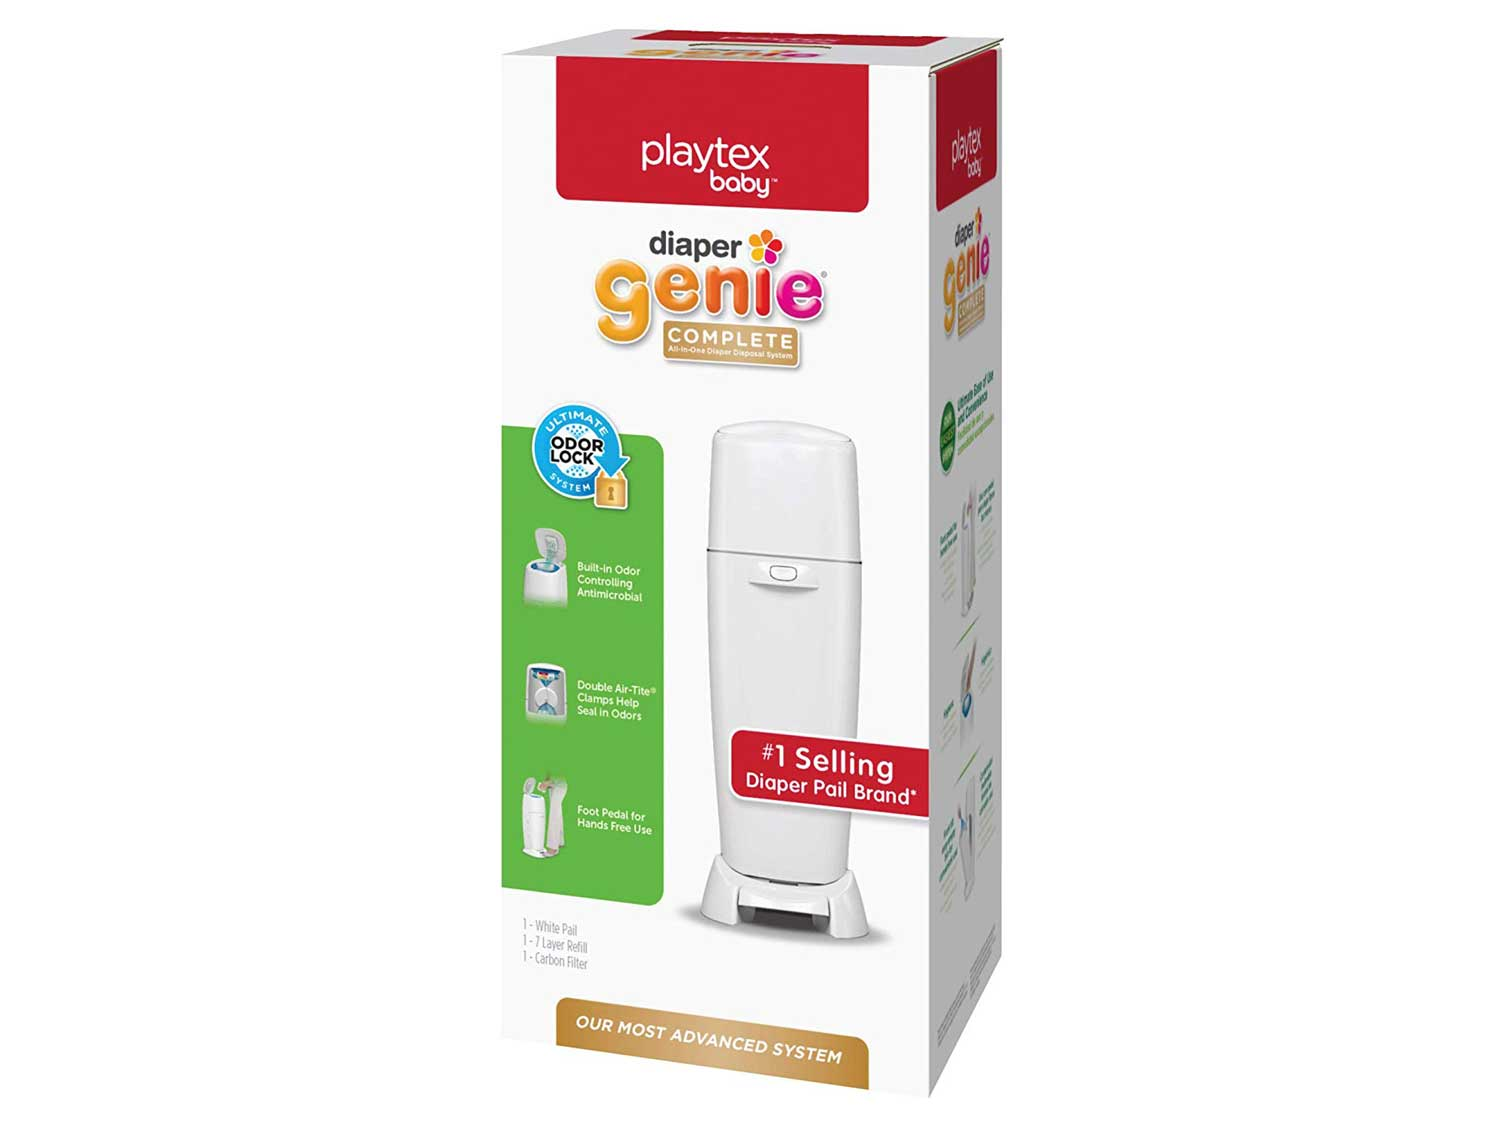 Playtex Diaper Genie Complete Diaper Pail, Fully Assembled, with Odor Lock Technology